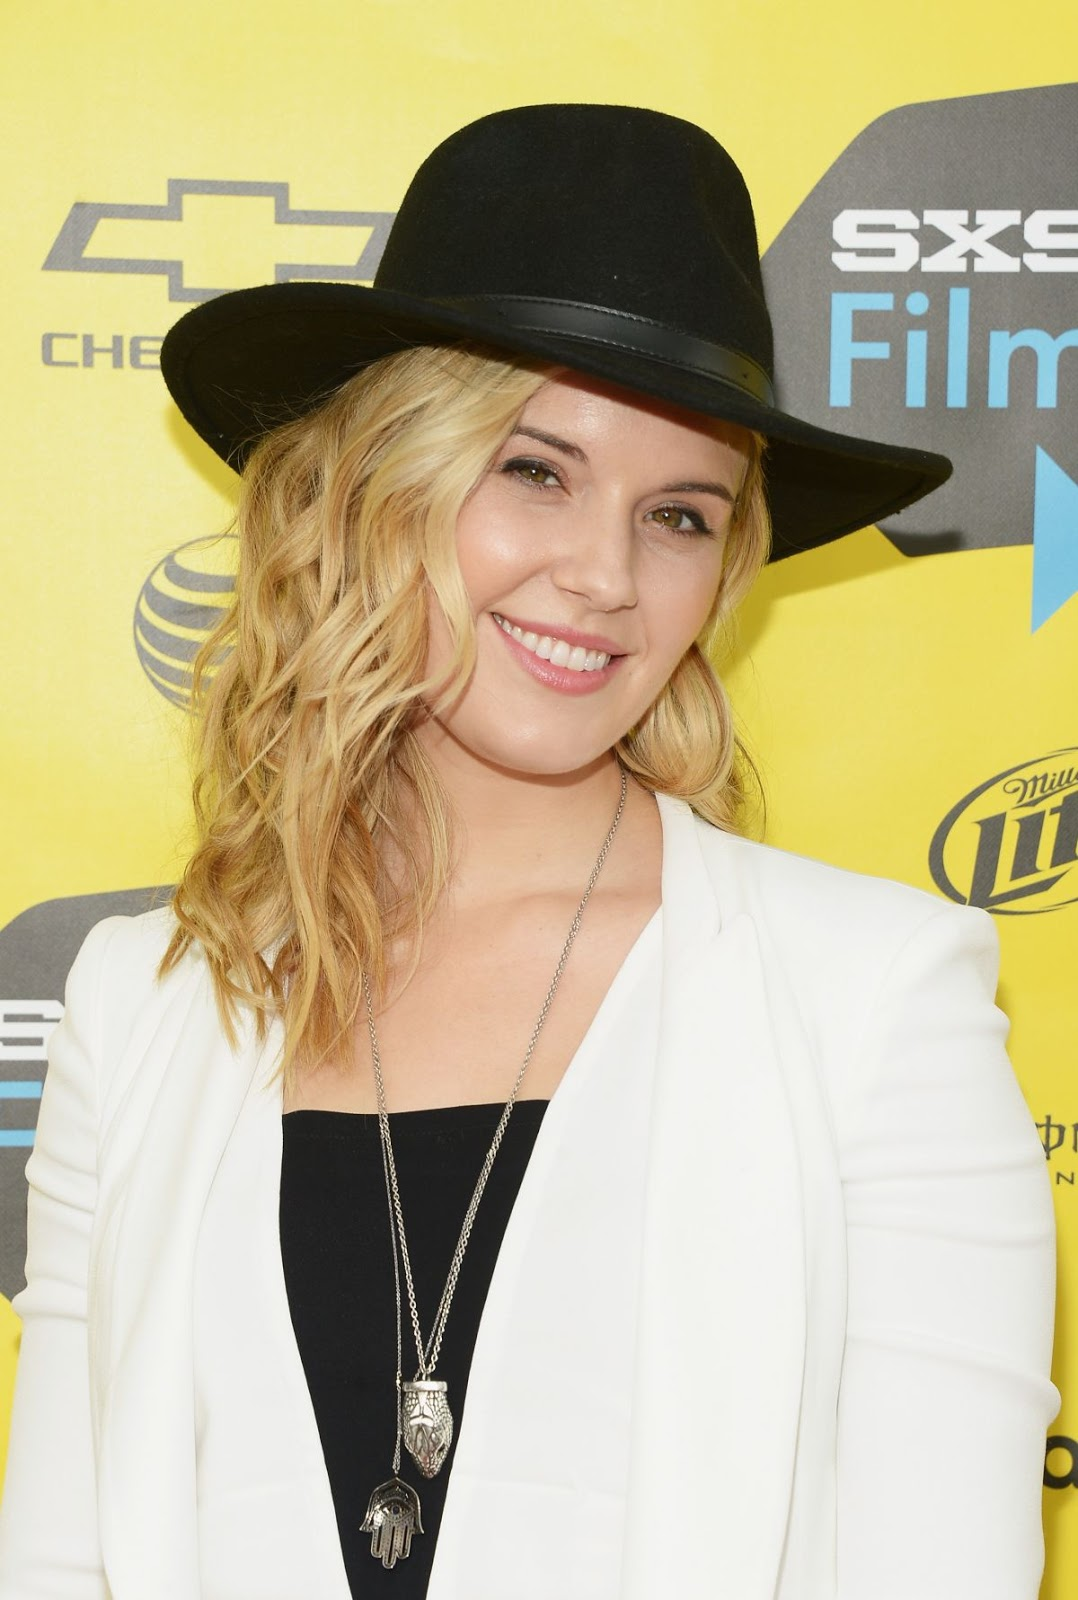 HQ Wallpapers of Maggie Grace at 'We'll Never Have Paris' Austin Premiere